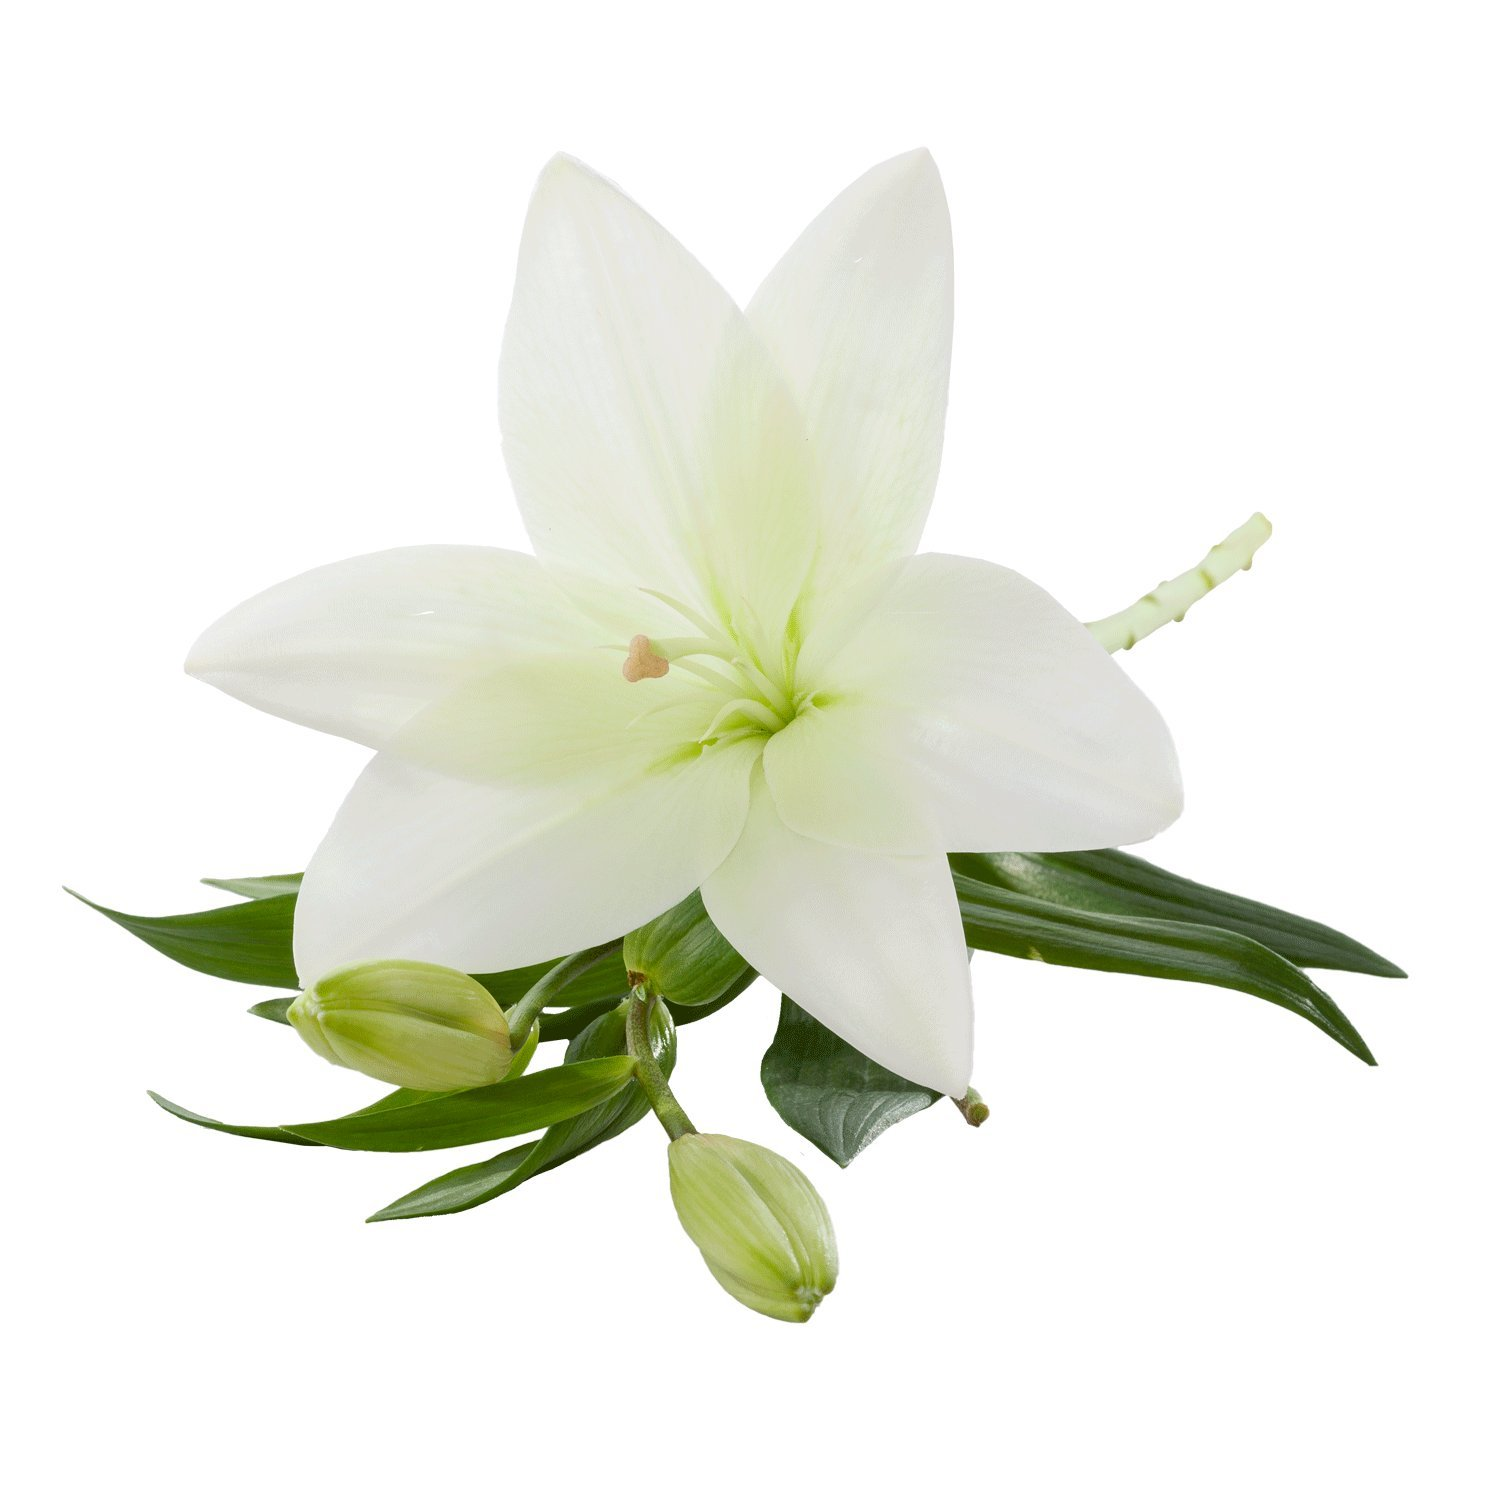 Asiatic Lilies | White - 40 Stem Count by Flower Farm Shop